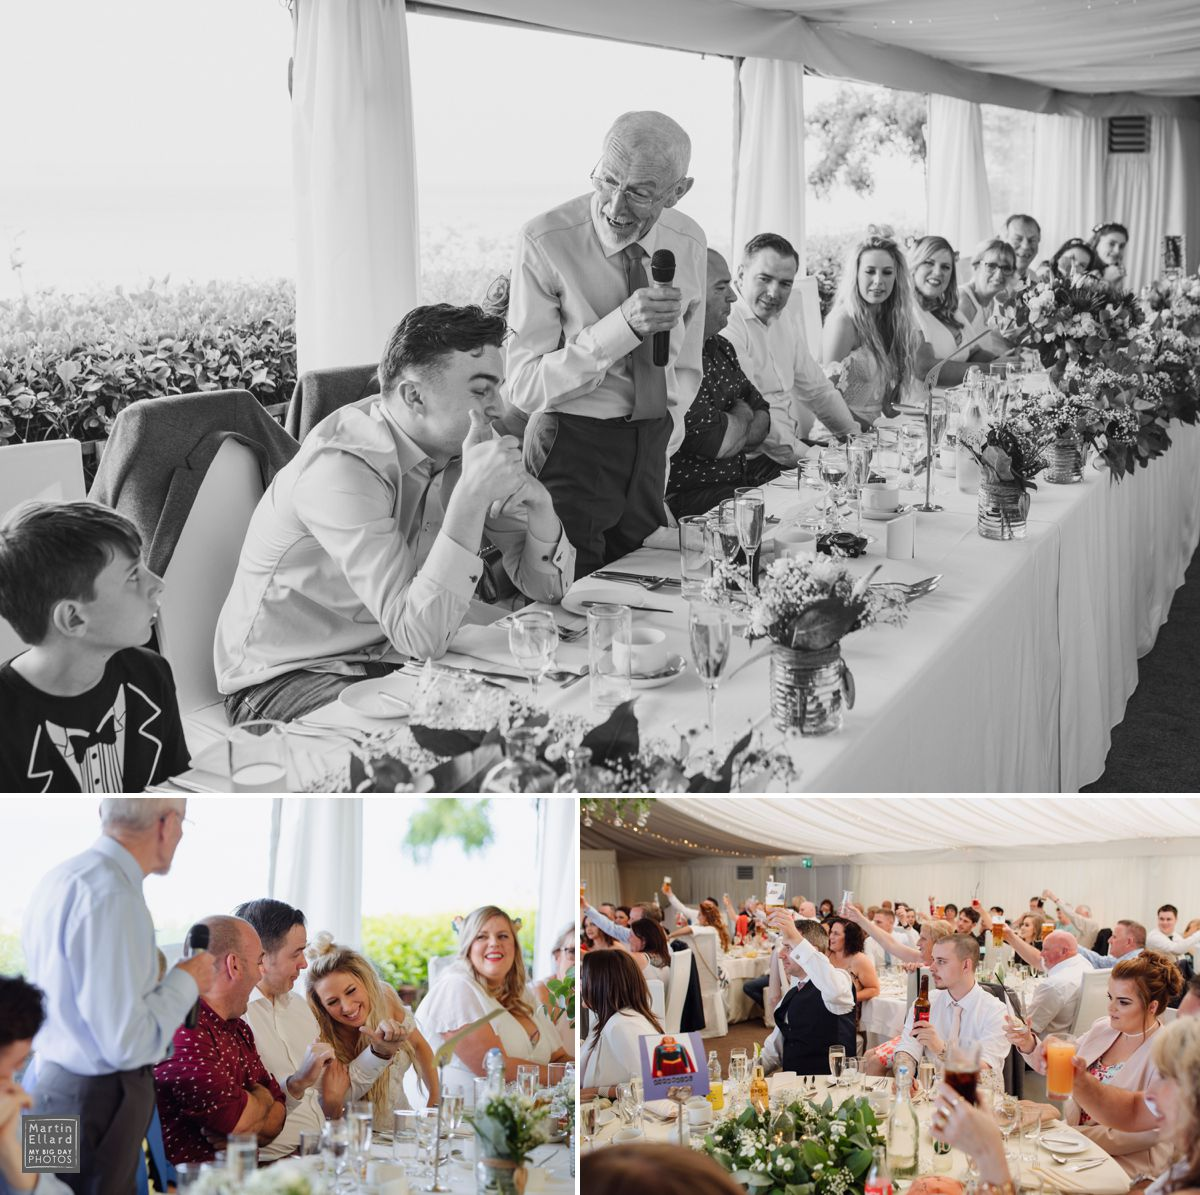 Oxwich wedding speeches